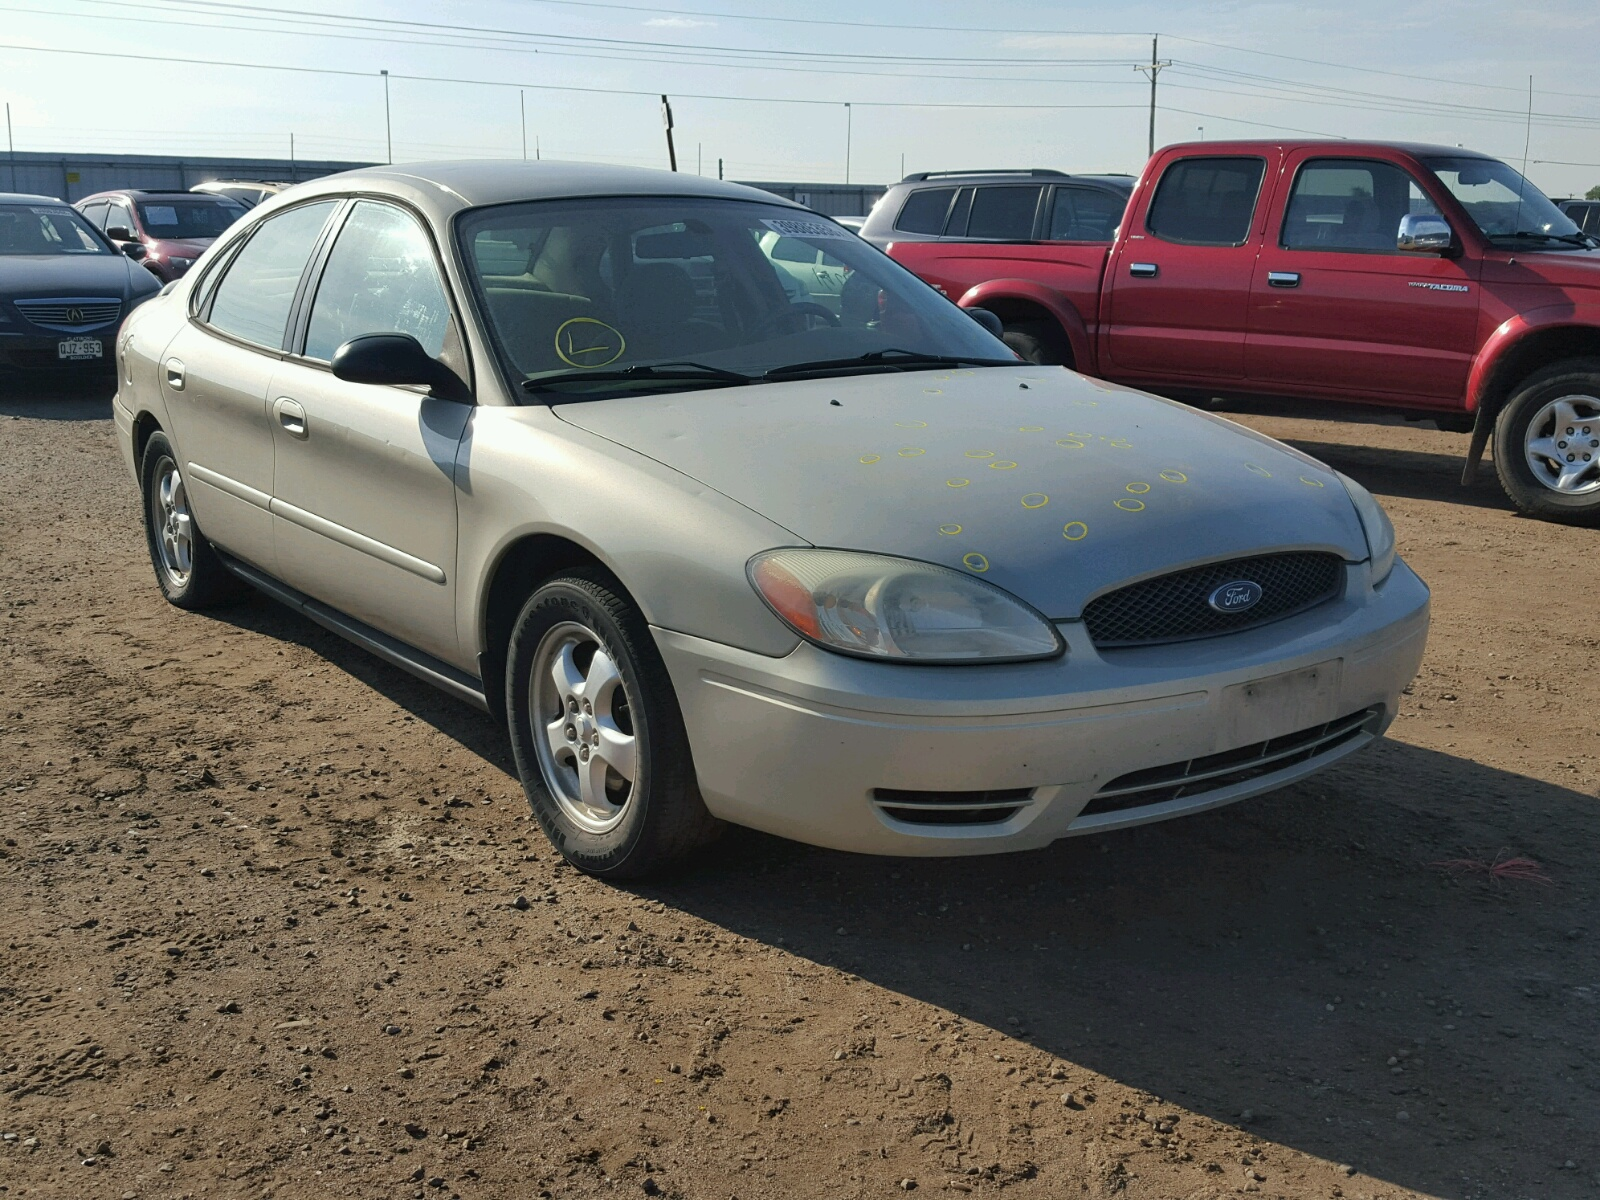 2007 Ford Taurus SE for sale at Copart Brighton CO Lot